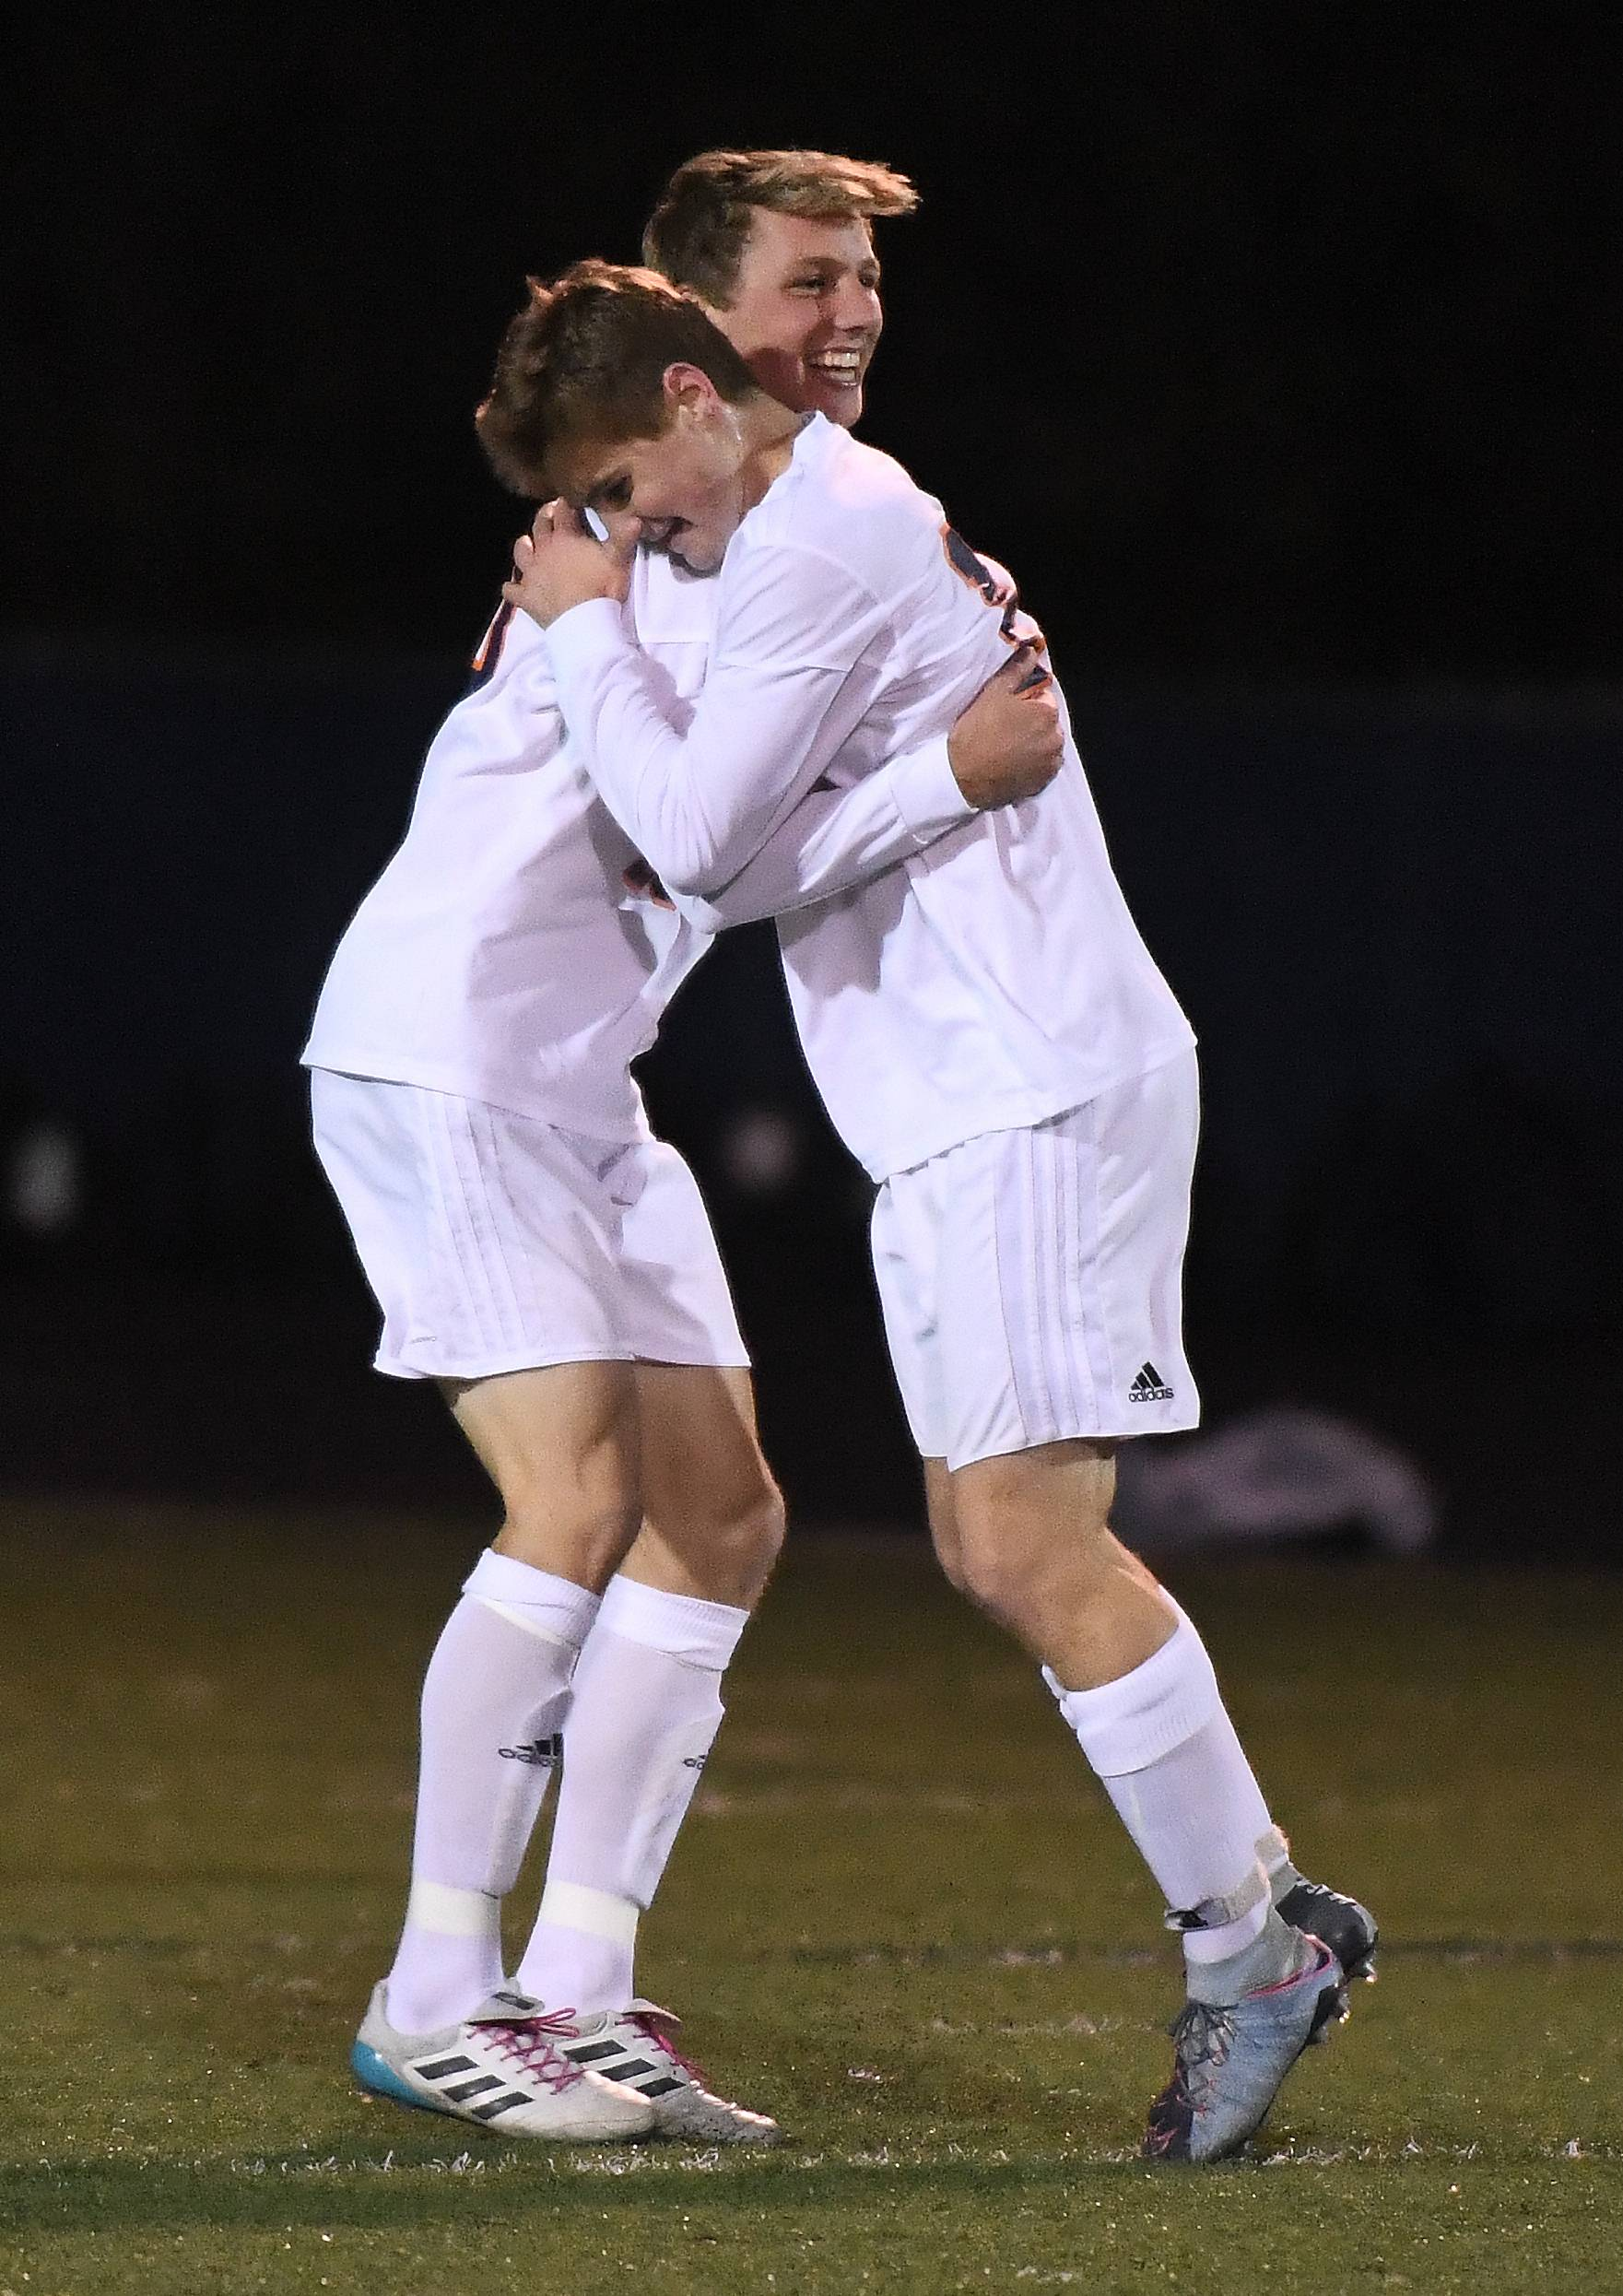 Naperville North's Patrick Koenig scored a first period goal and celebrates with teammate Mitch Konrad.